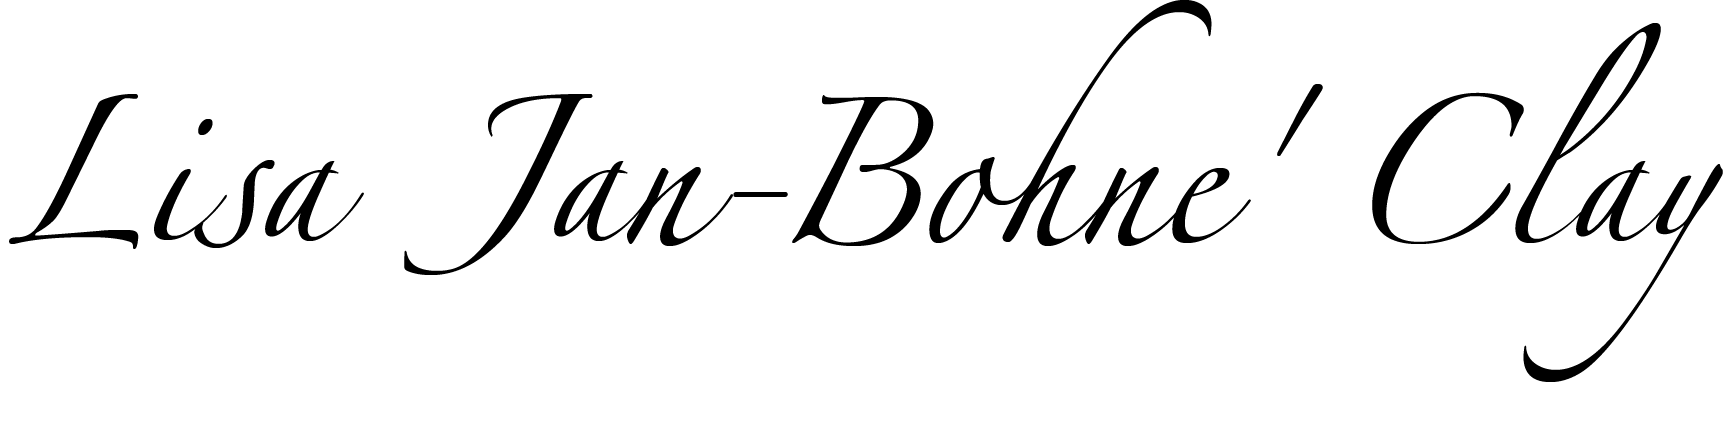 Lisa Jan-Bohne' Clay's Signature